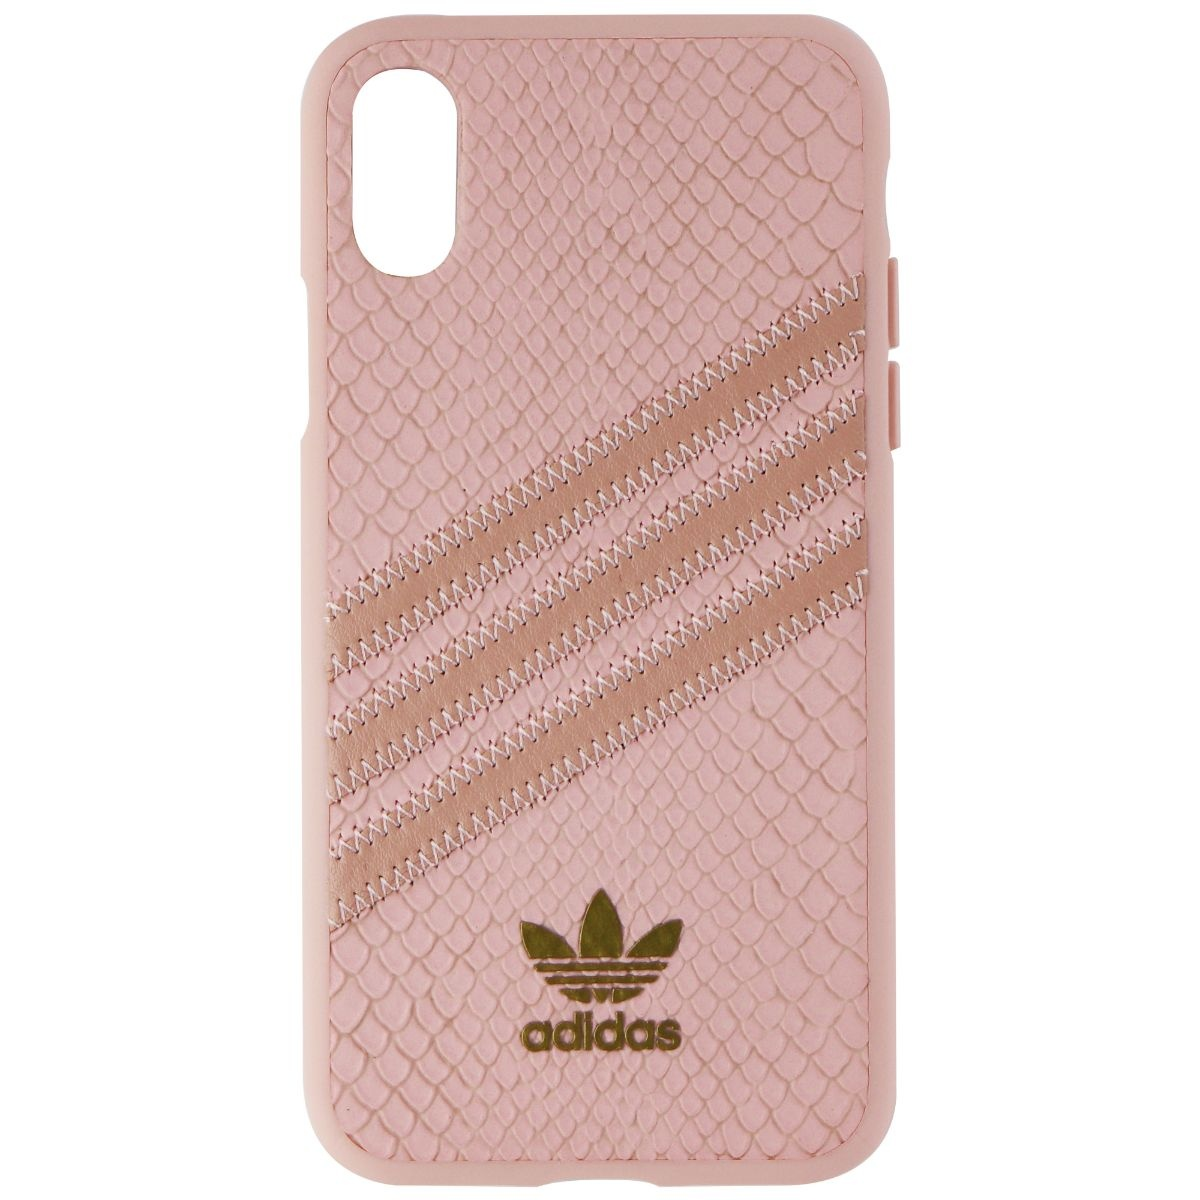 Adidas 3-Stripes Snap Case for Apple iPhone XS and X - Pink Snake / Gold